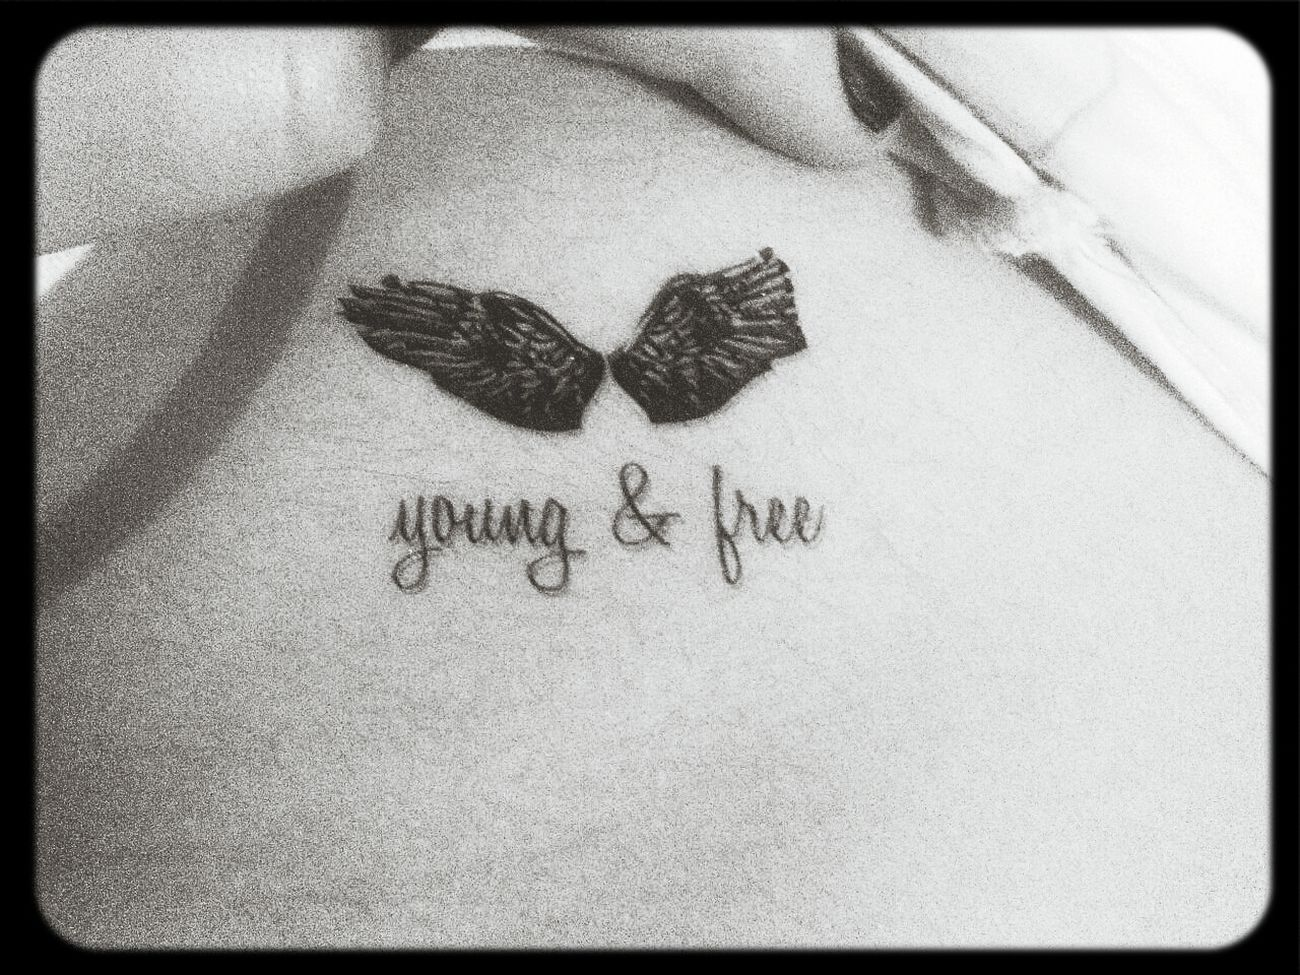 Young Wild And Free(; Forever Young Free Young&Free  tattos